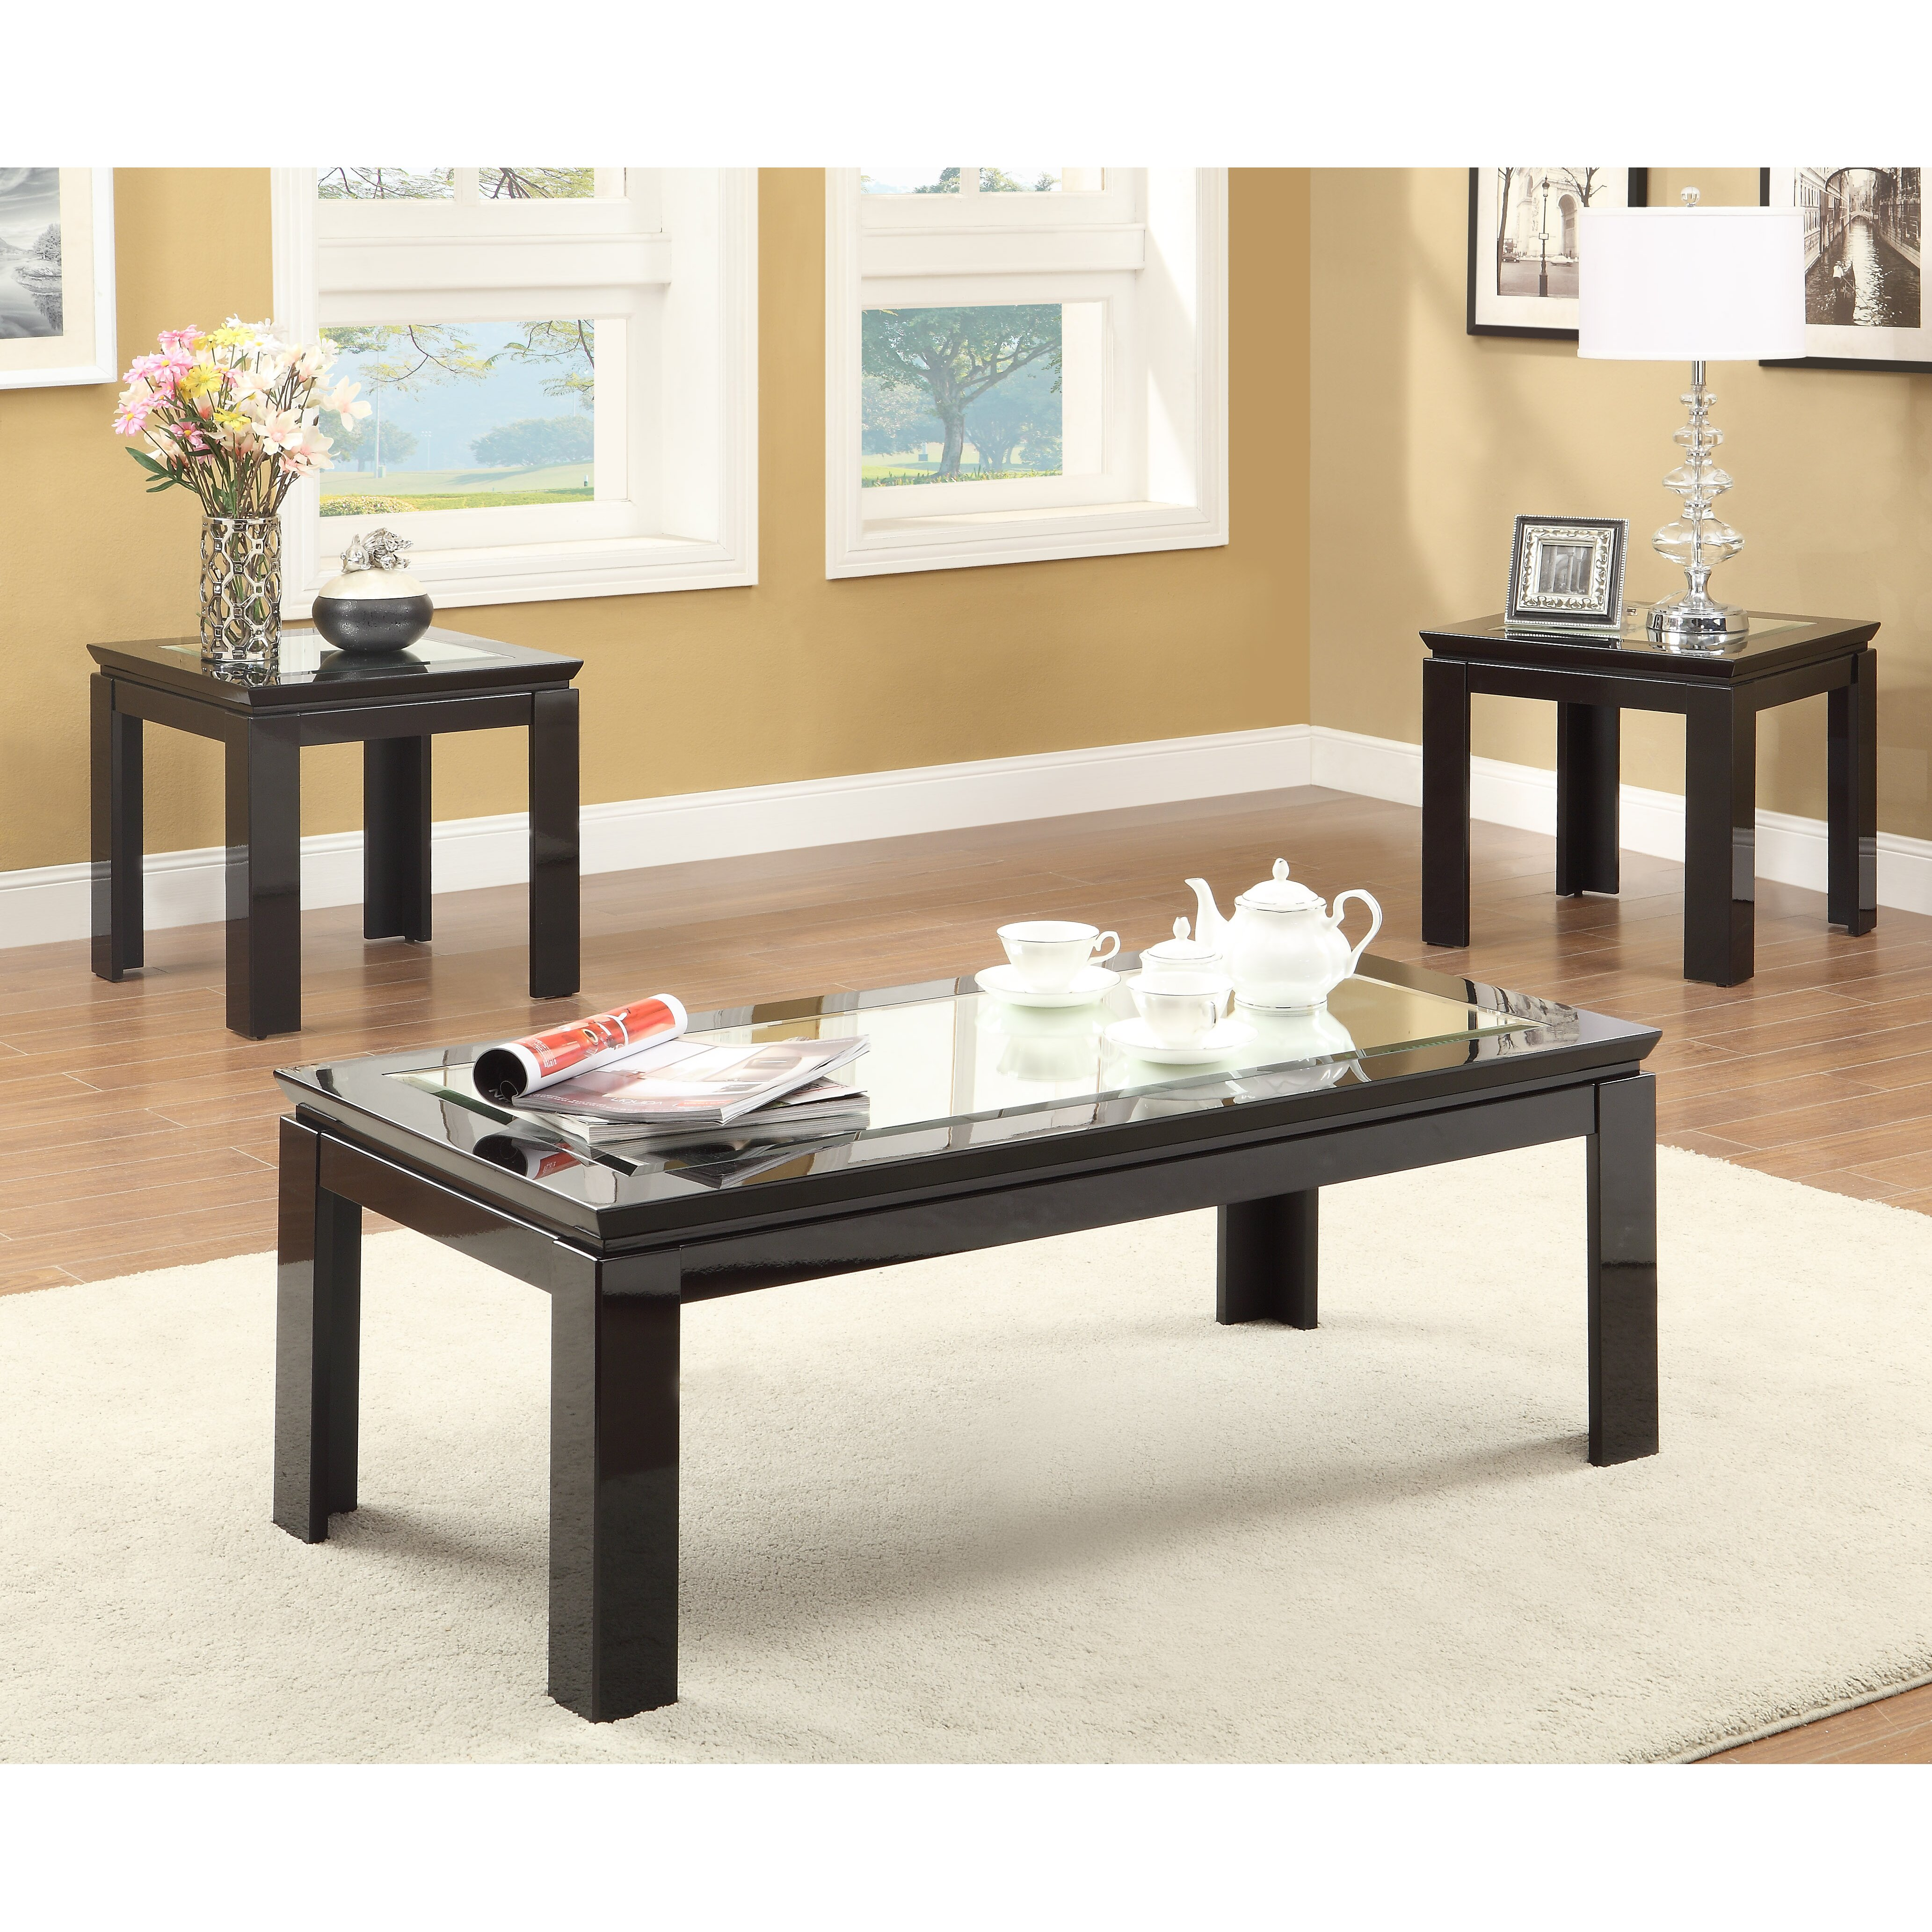 Hokku Coffee Table Sets: Hokku Designs Nayom Mirrored 3 Piece Coffee Table Set